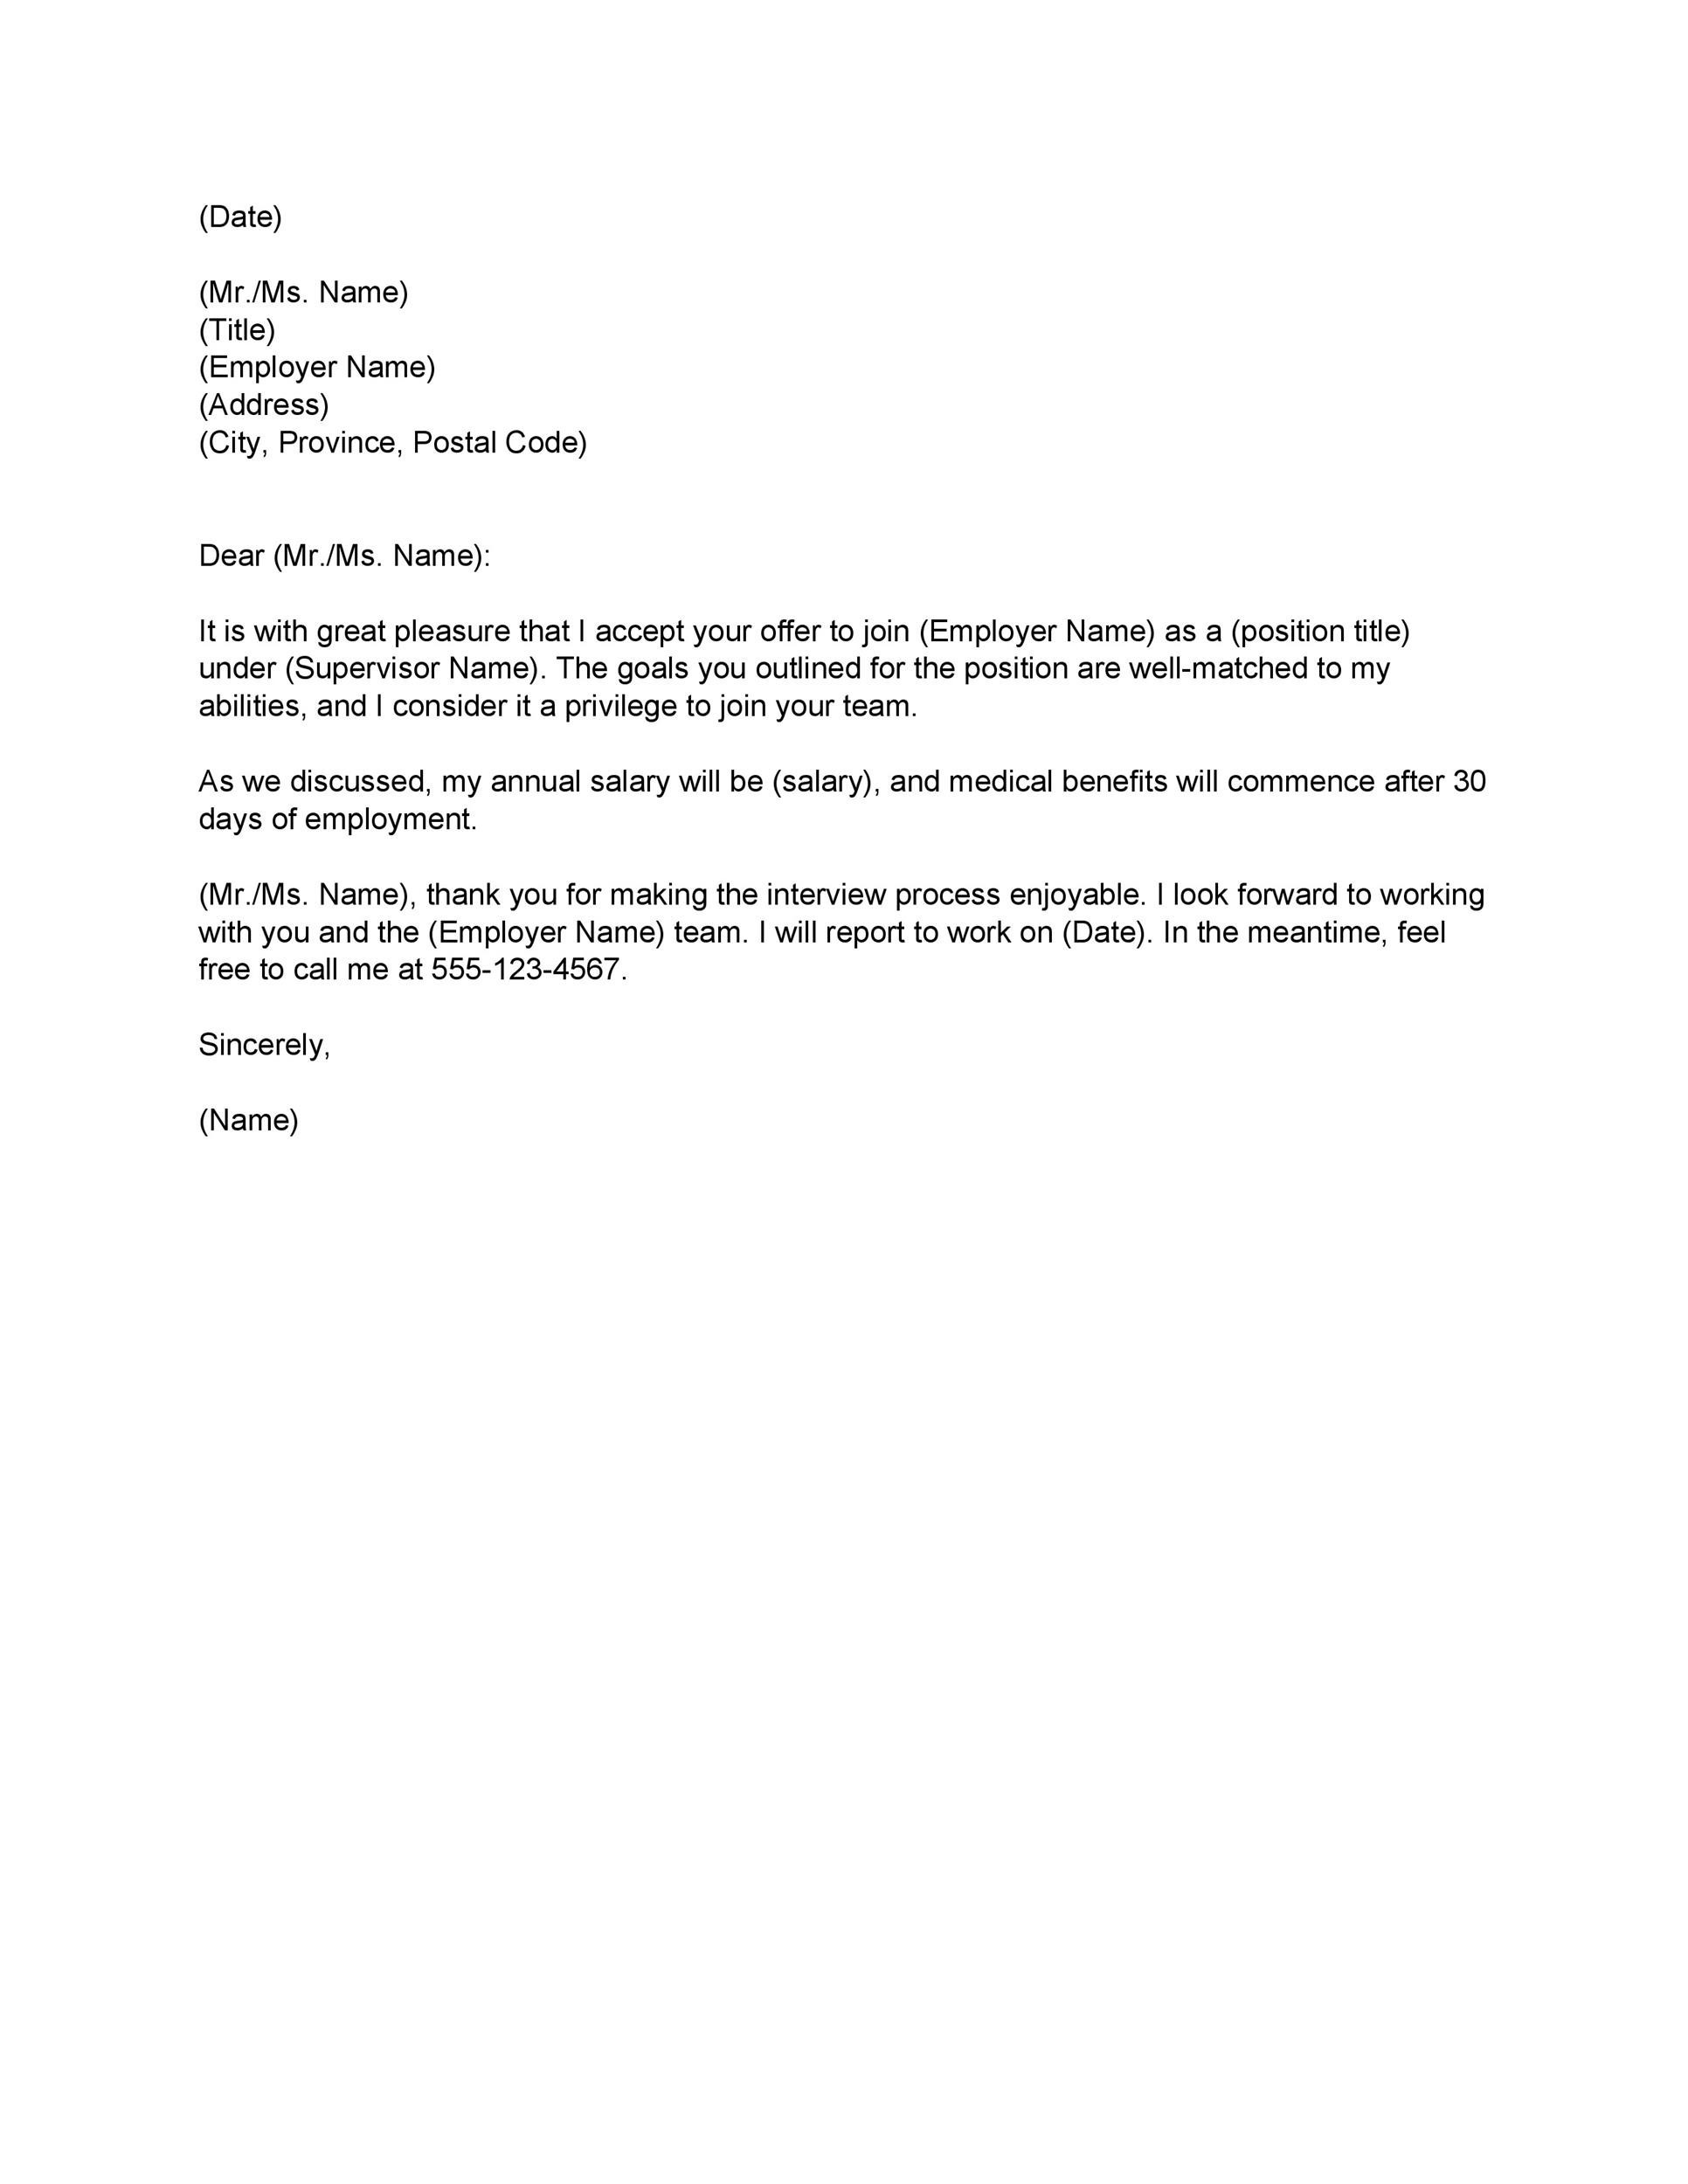 Employment Acceptance Letter | 40 Professional Job Offer Acceptance Letter Email Templates